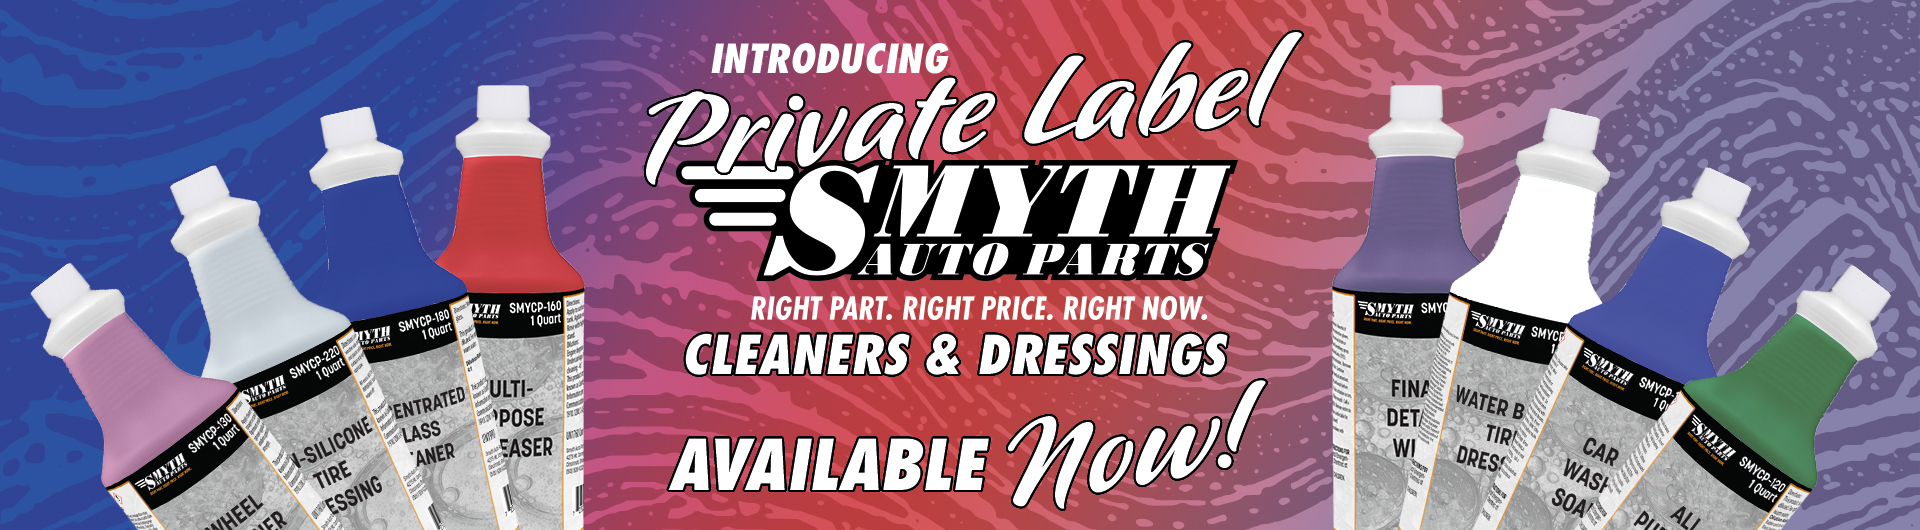 Introducing Smyth Auto Parts Private Label Cleaners and Dressings